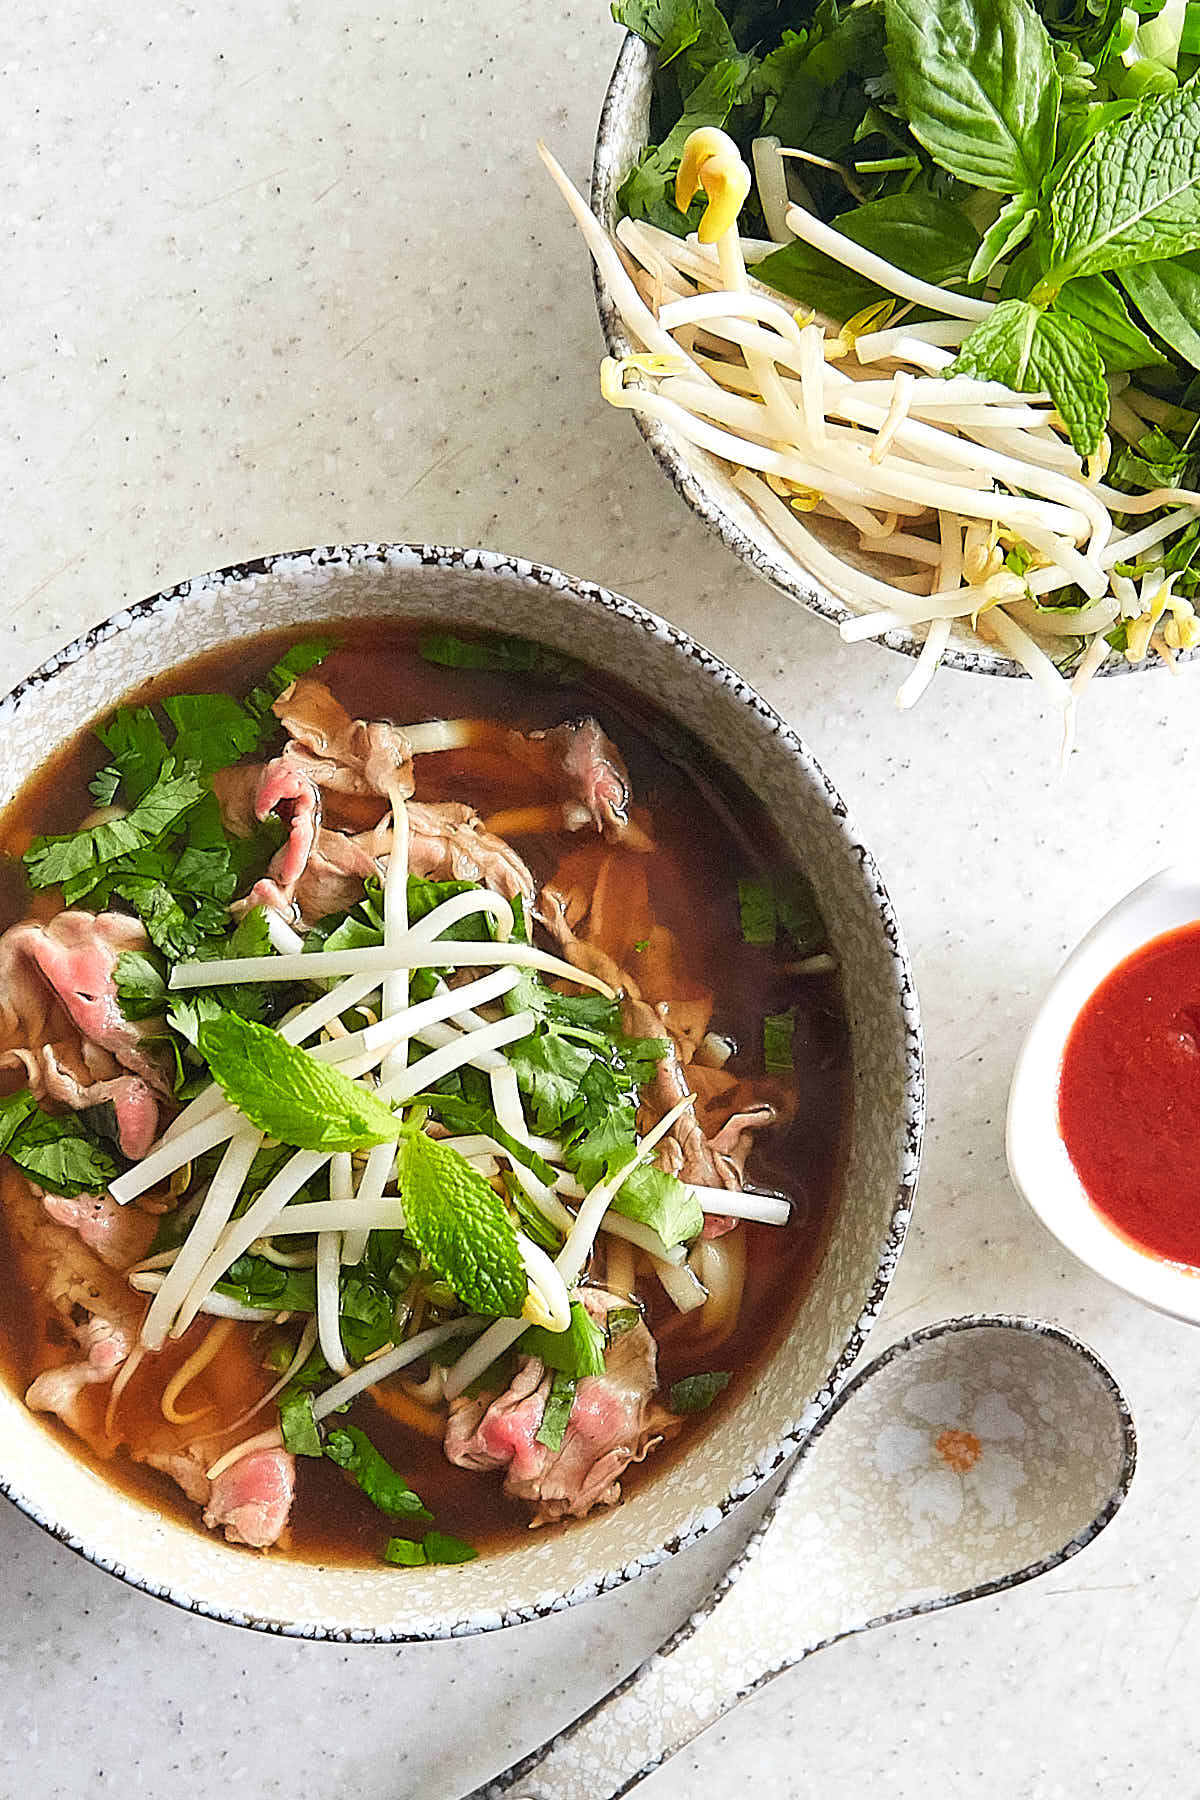 Top down view of Vietnamese pho soup on a bowl garnished with bean sprouts, mint and parsley.